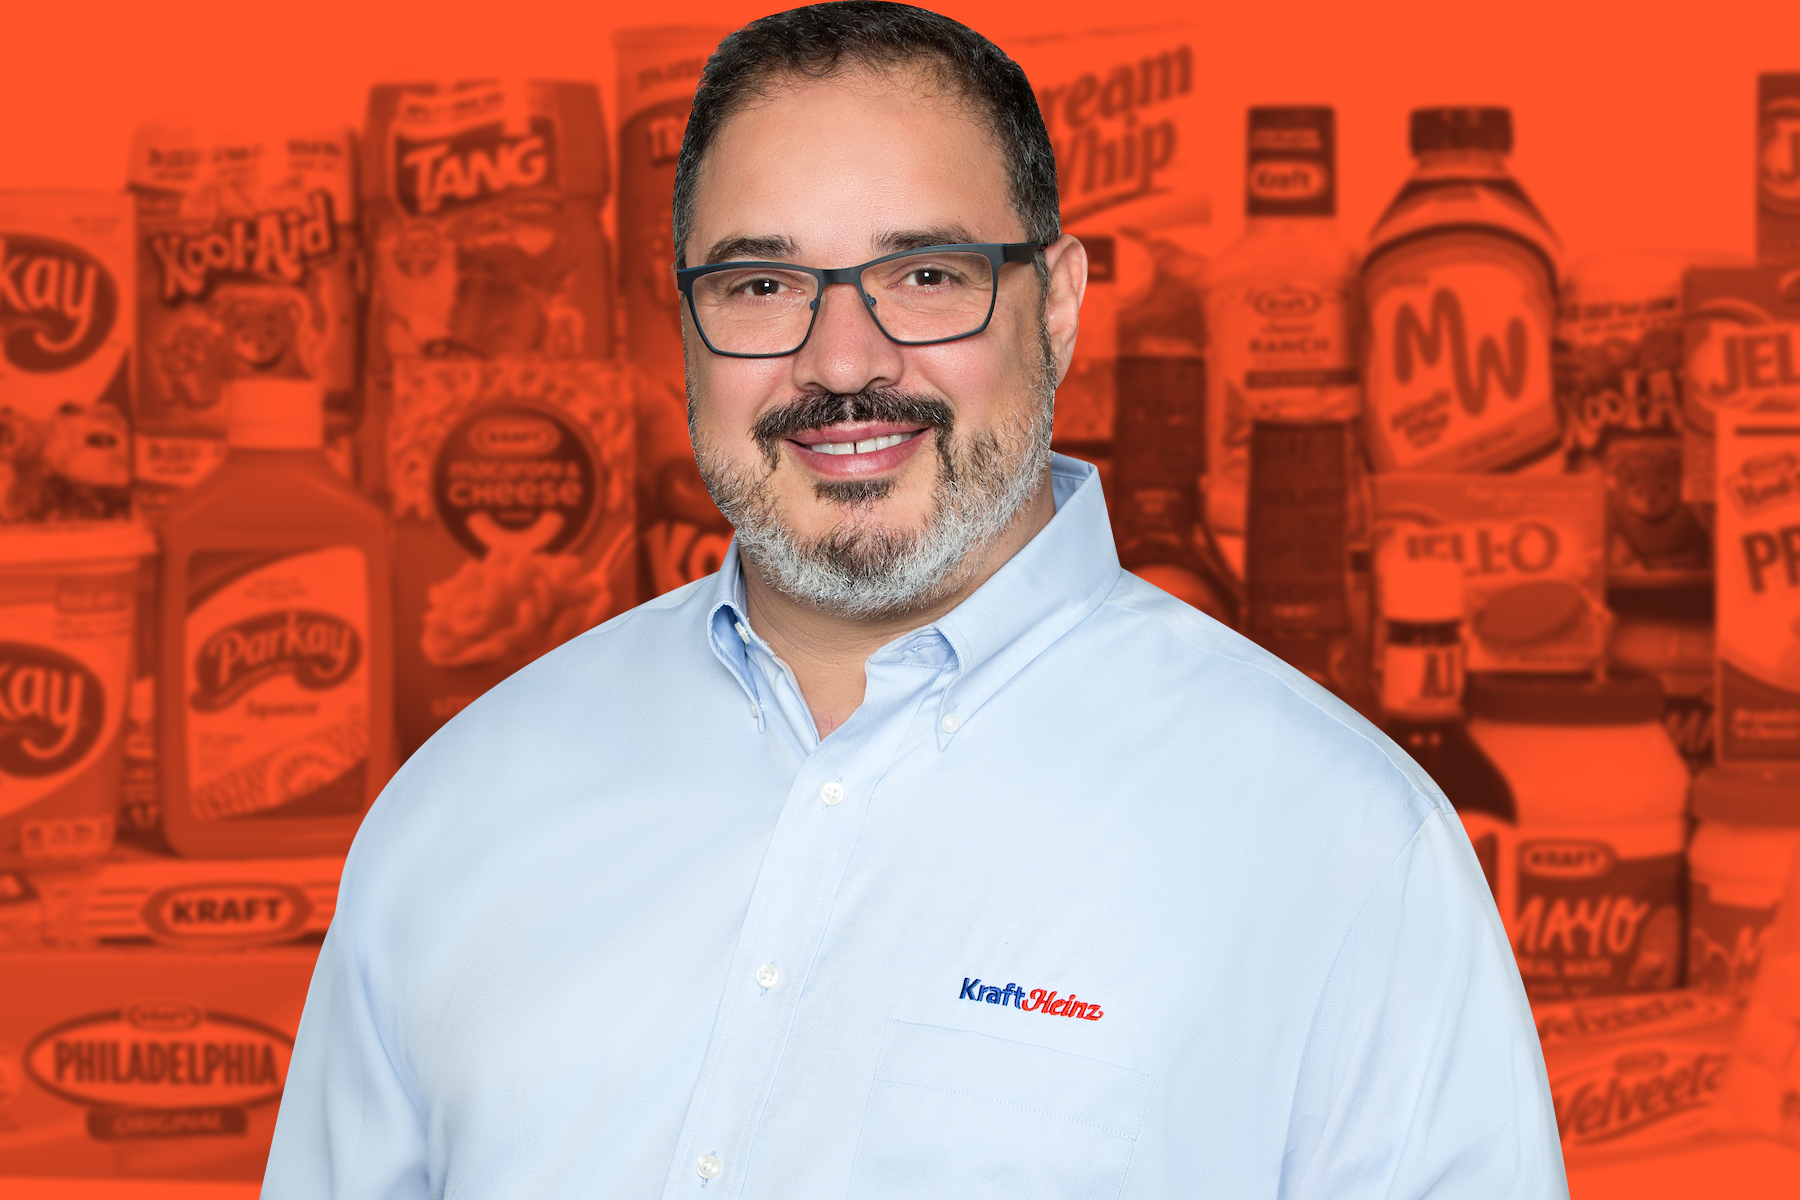 Kraft Heinz says AB InBev's Miguel Patricio is set to become its CEO in July.